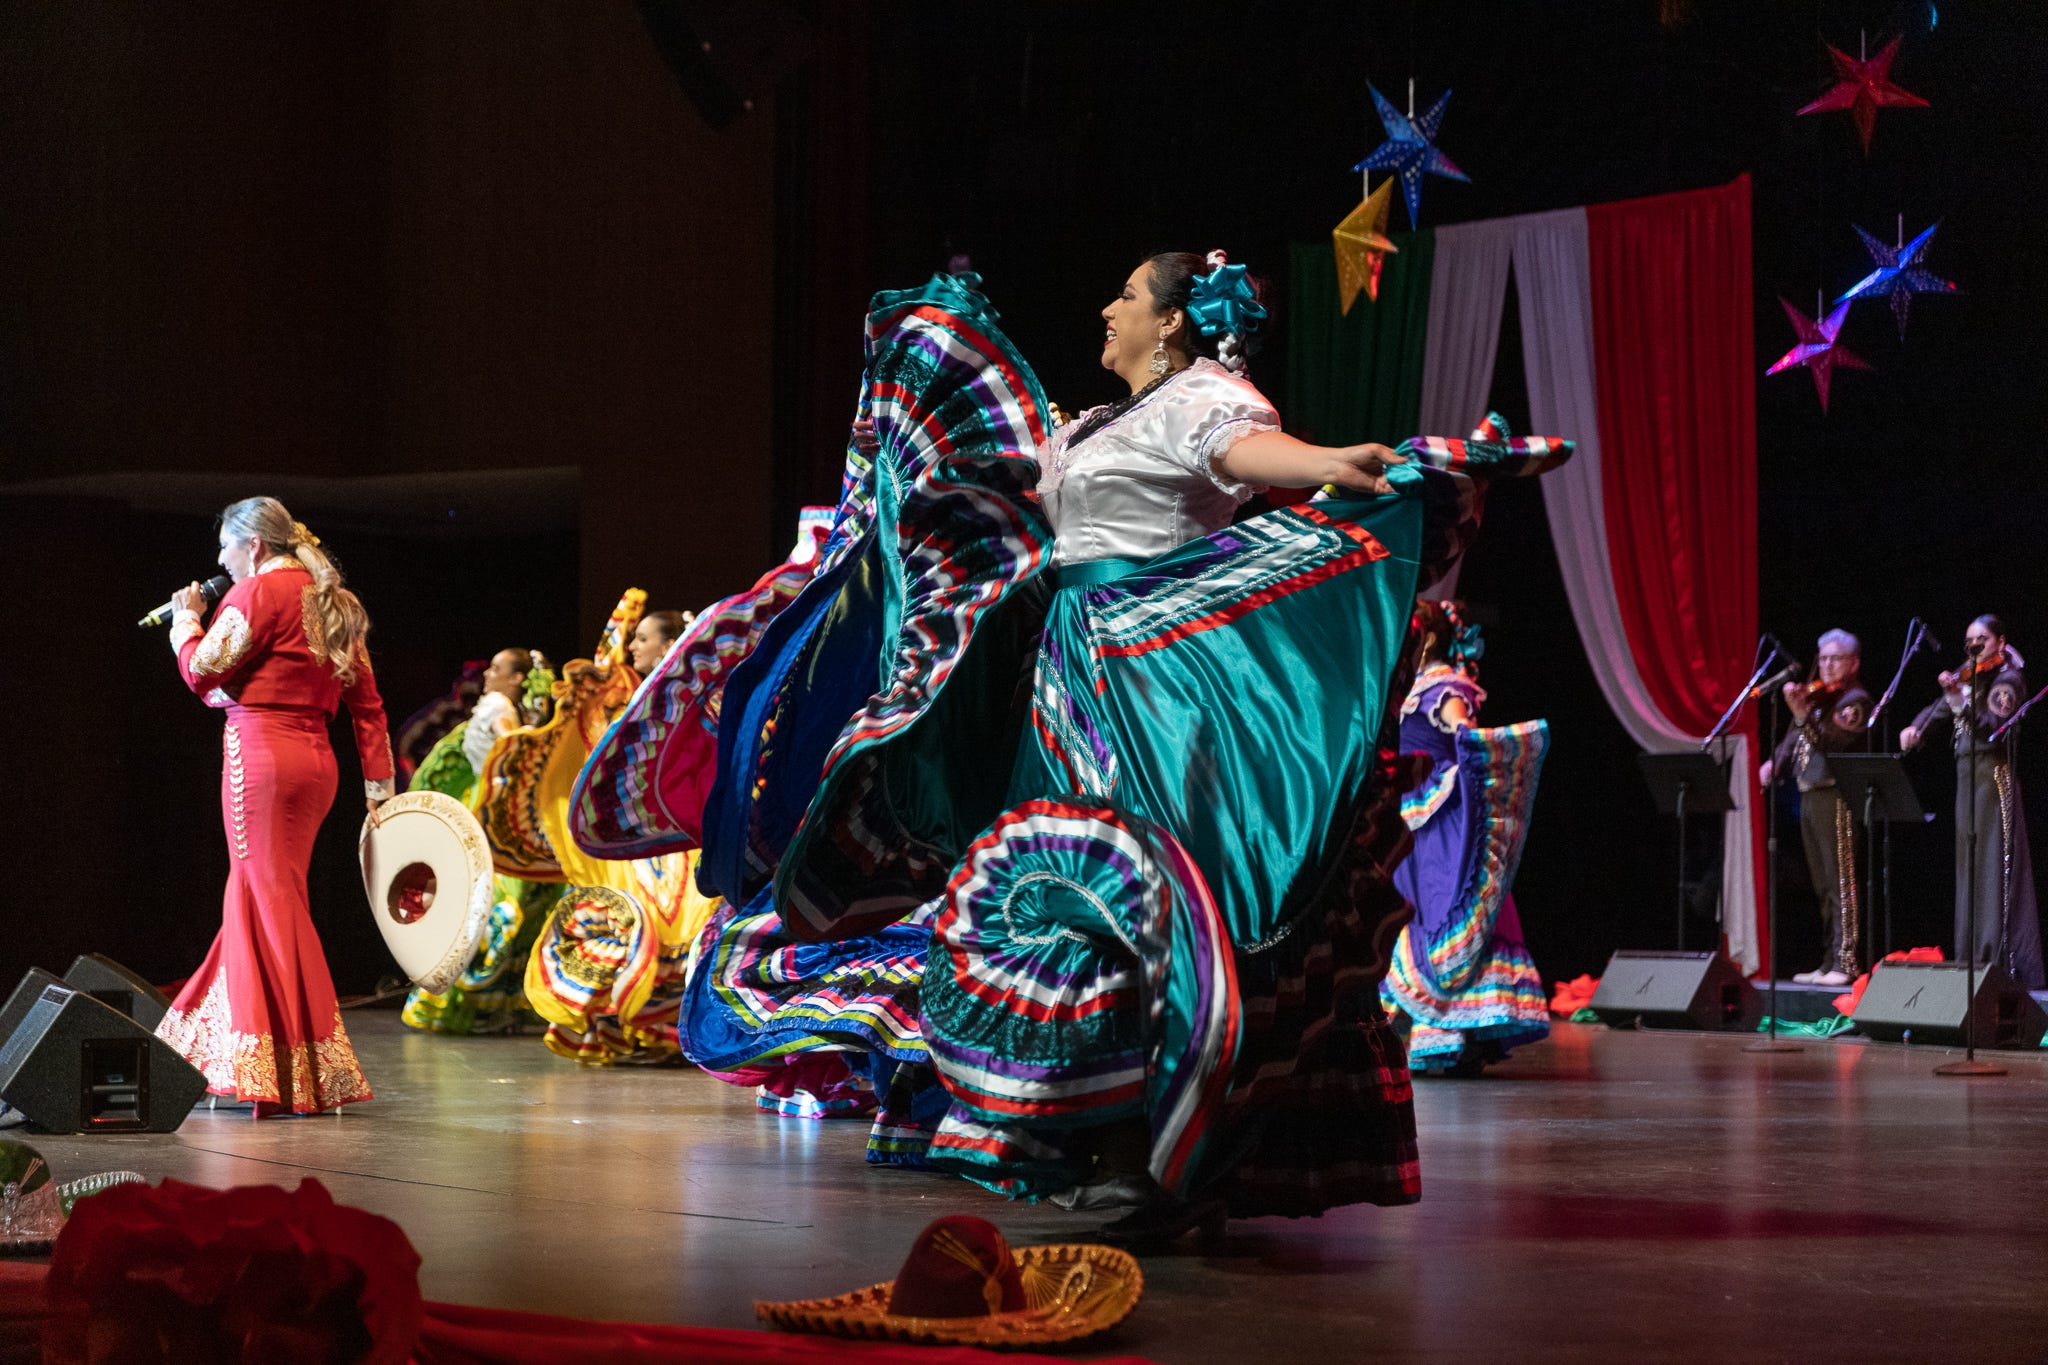 The 22nd Annual Mariachi & Folklórico Festival held at the Chandler Center for the Arts featured a range of performances that represented different regions in México.